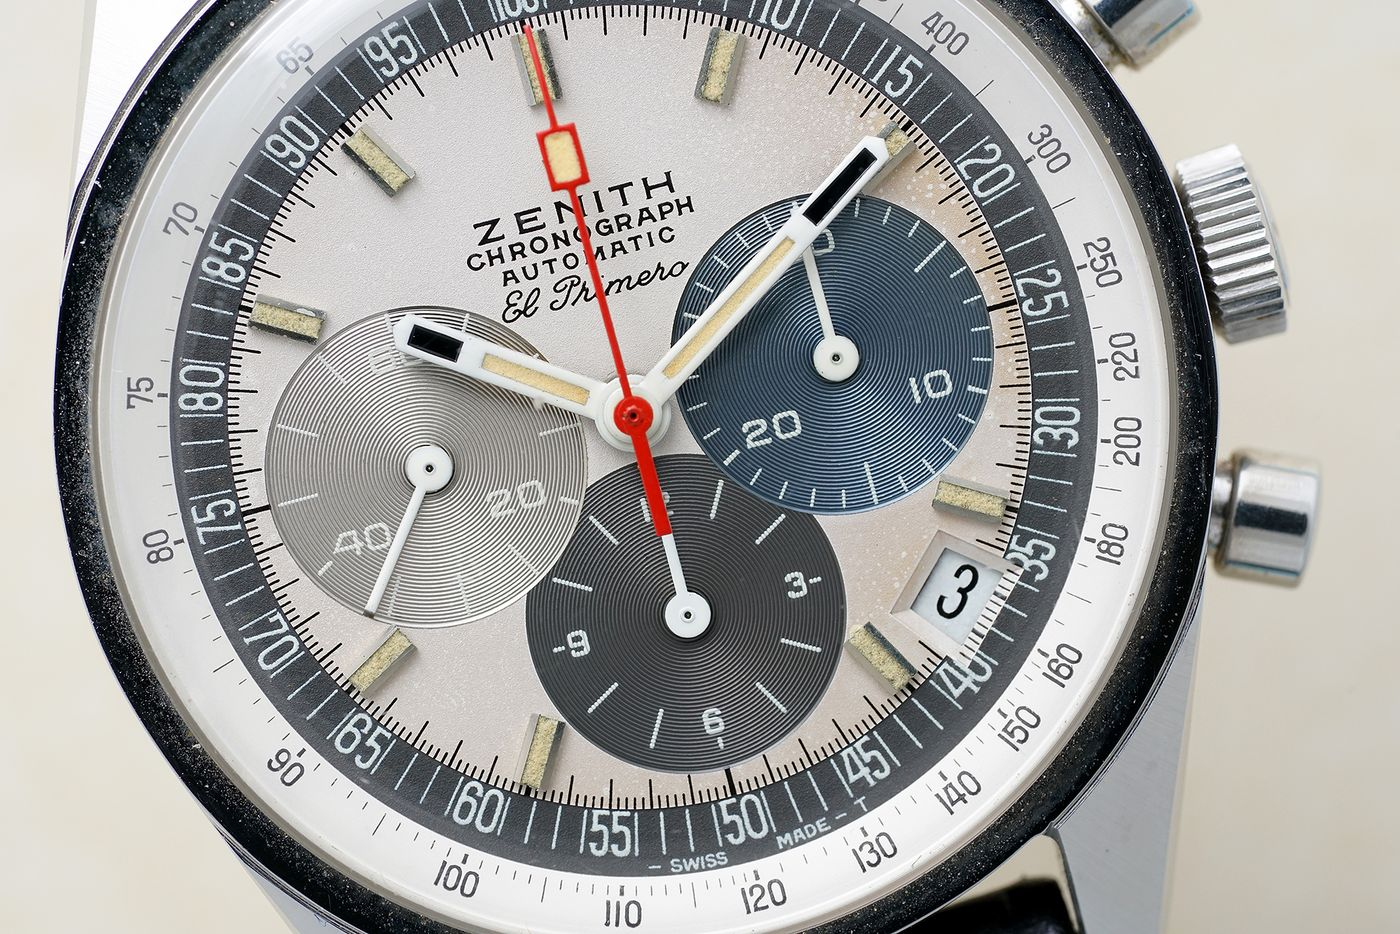 Much like the stop-start nature of the mechanism that powers Zenith's iconic chronograph, the story of the El Primero is one animated by a sequence of new beginnings. Fifty years after its launch, we revisit some of the defining moments of this beloved chronograph.